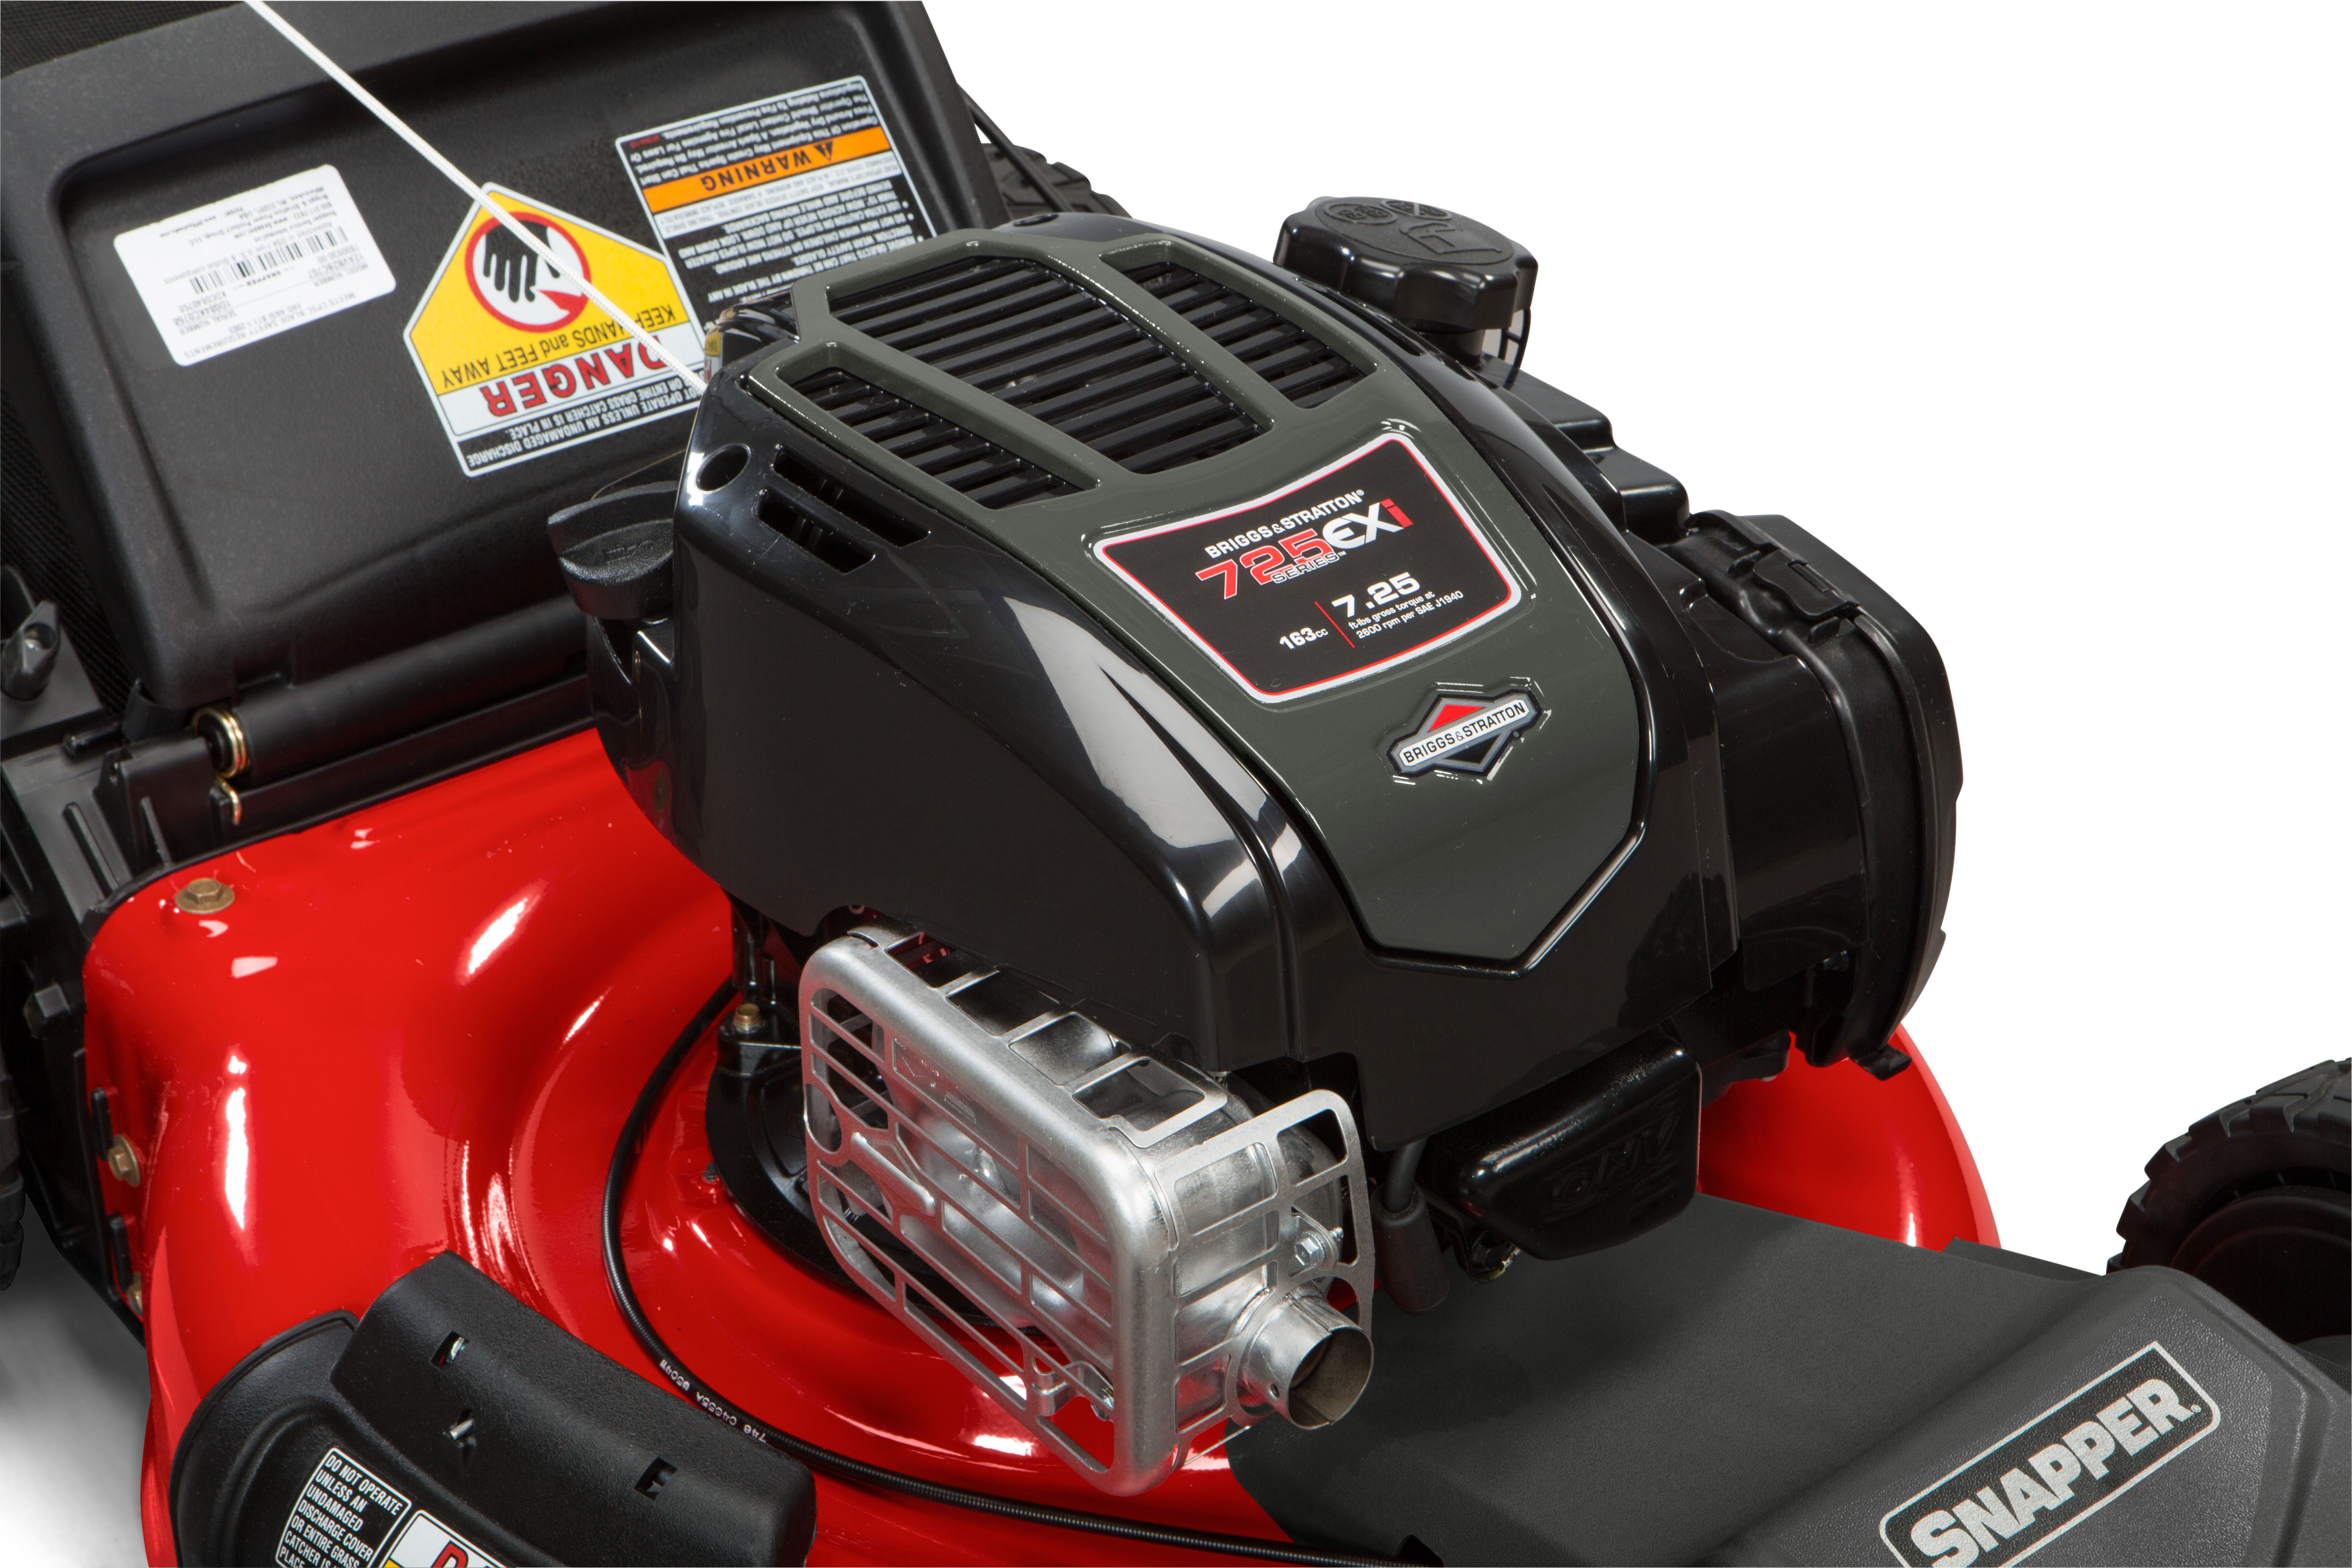 Best New Tool: The Snapper SP80 Lawnmower and its Carefree